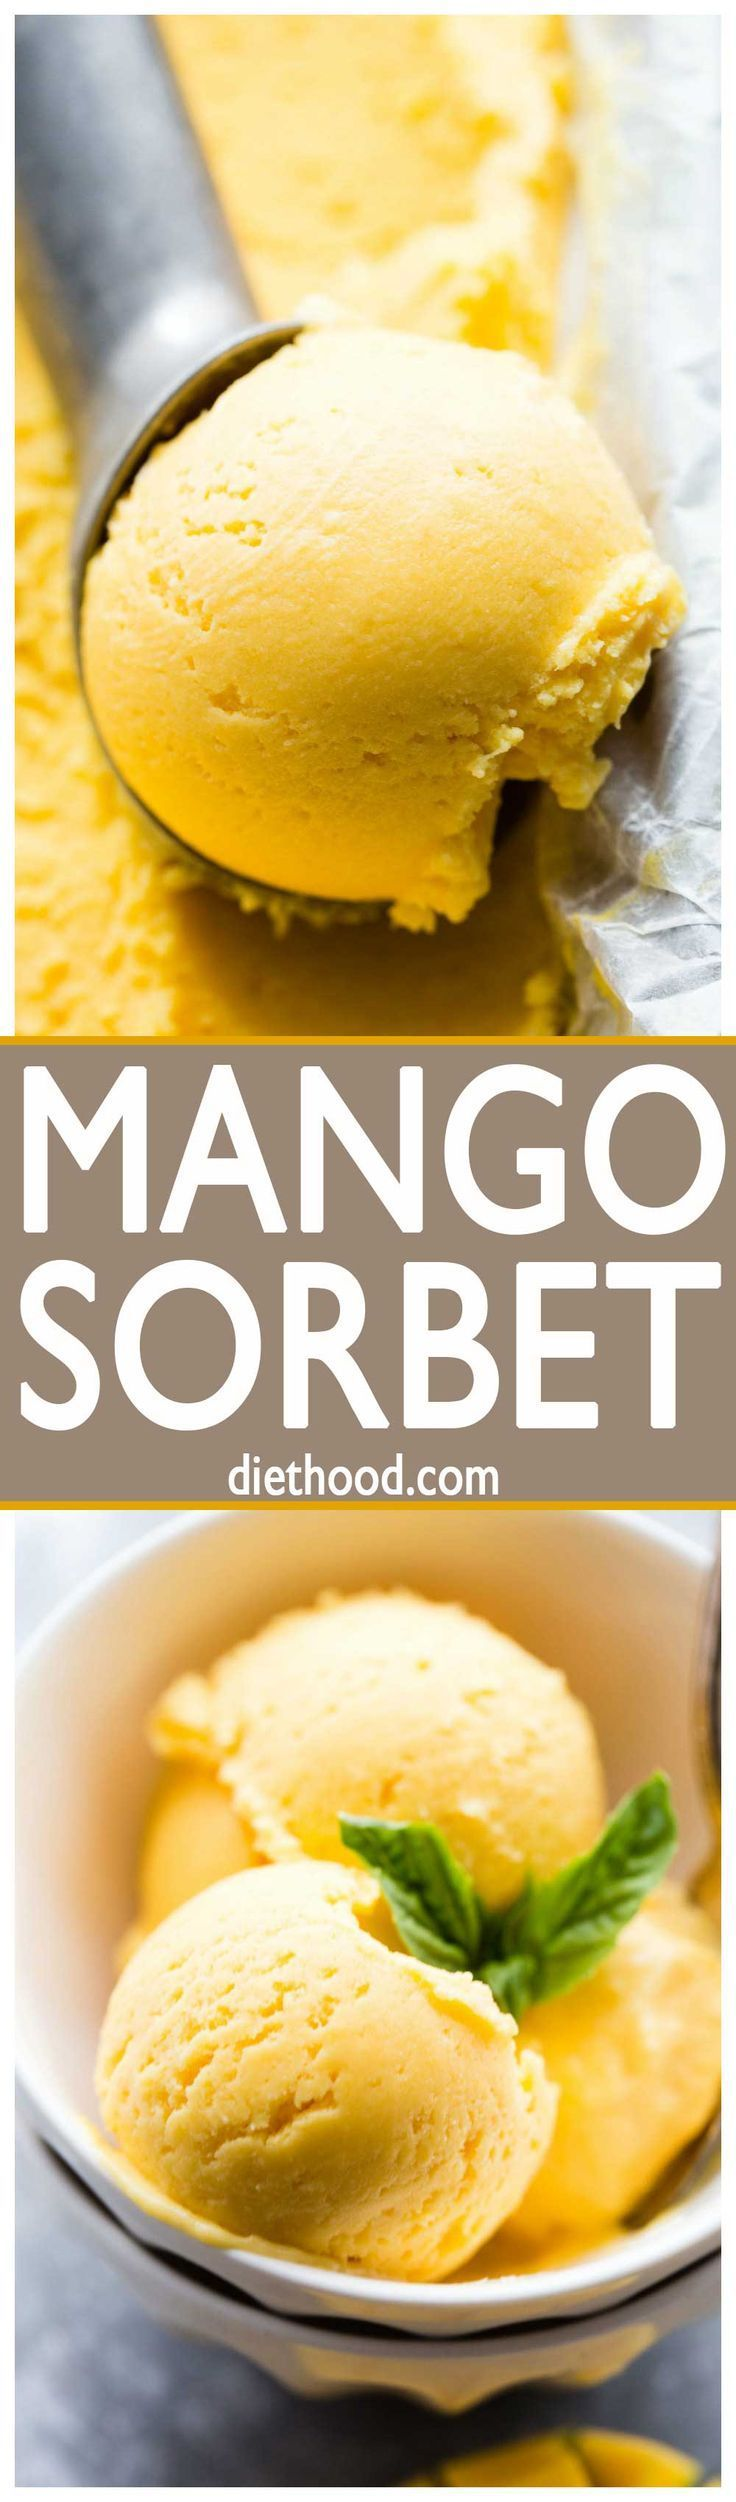 Mango Sorbet Recipe - Sweet, tart, rich, and SO delicious Mango Sorbet made with just 5 ingredients, and without an ice cream maker!